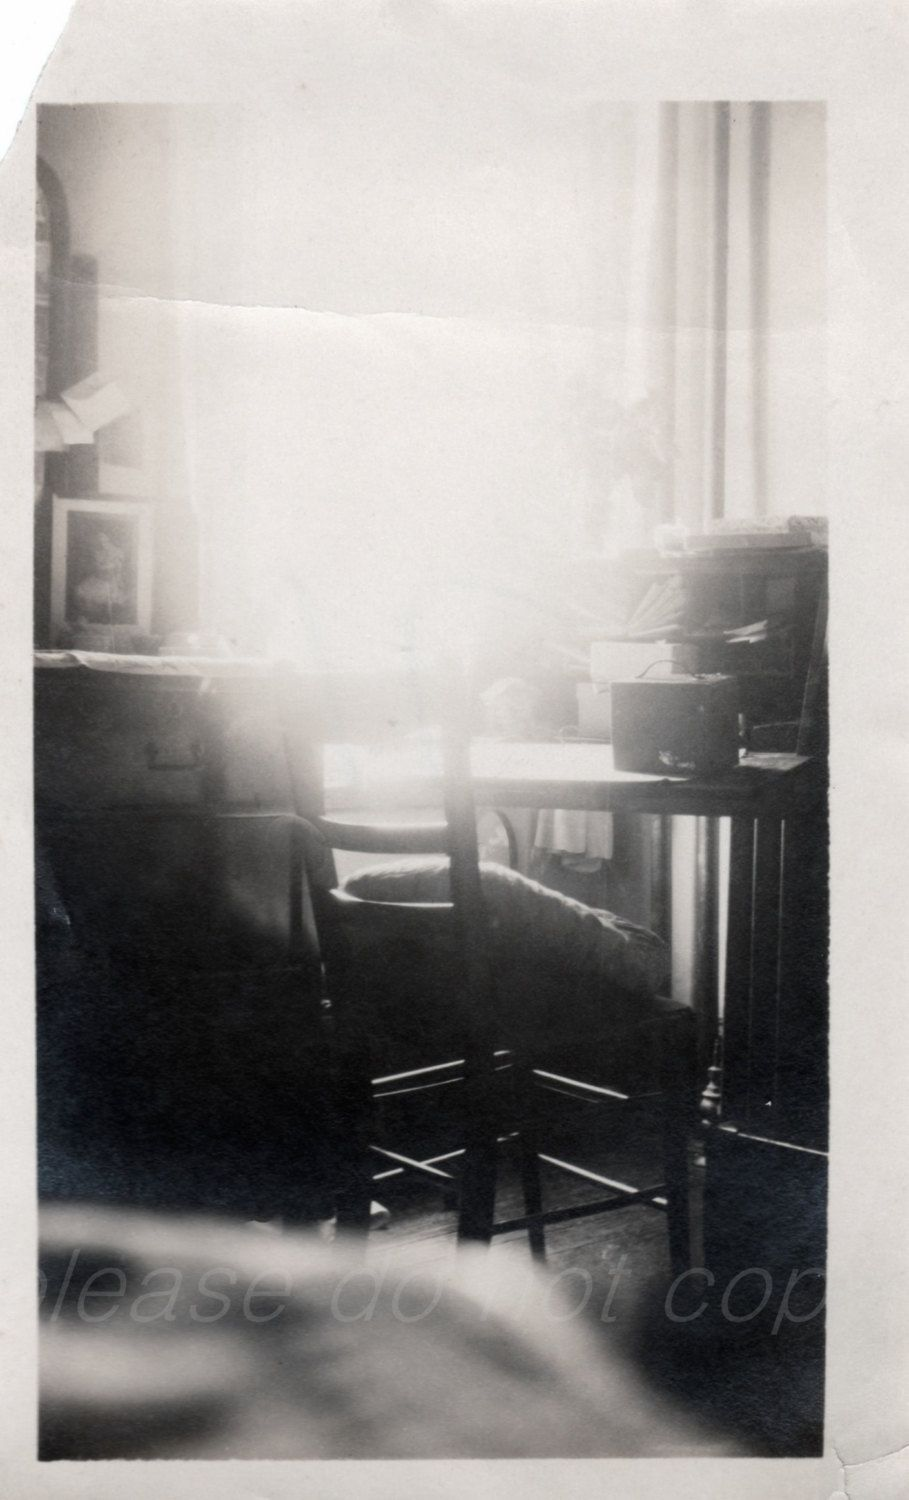 the study Antique Snapshot Photo by photopicker on Etsy https://www.etsy.com/listing/220994488/the-study-antique-snapshot-photo